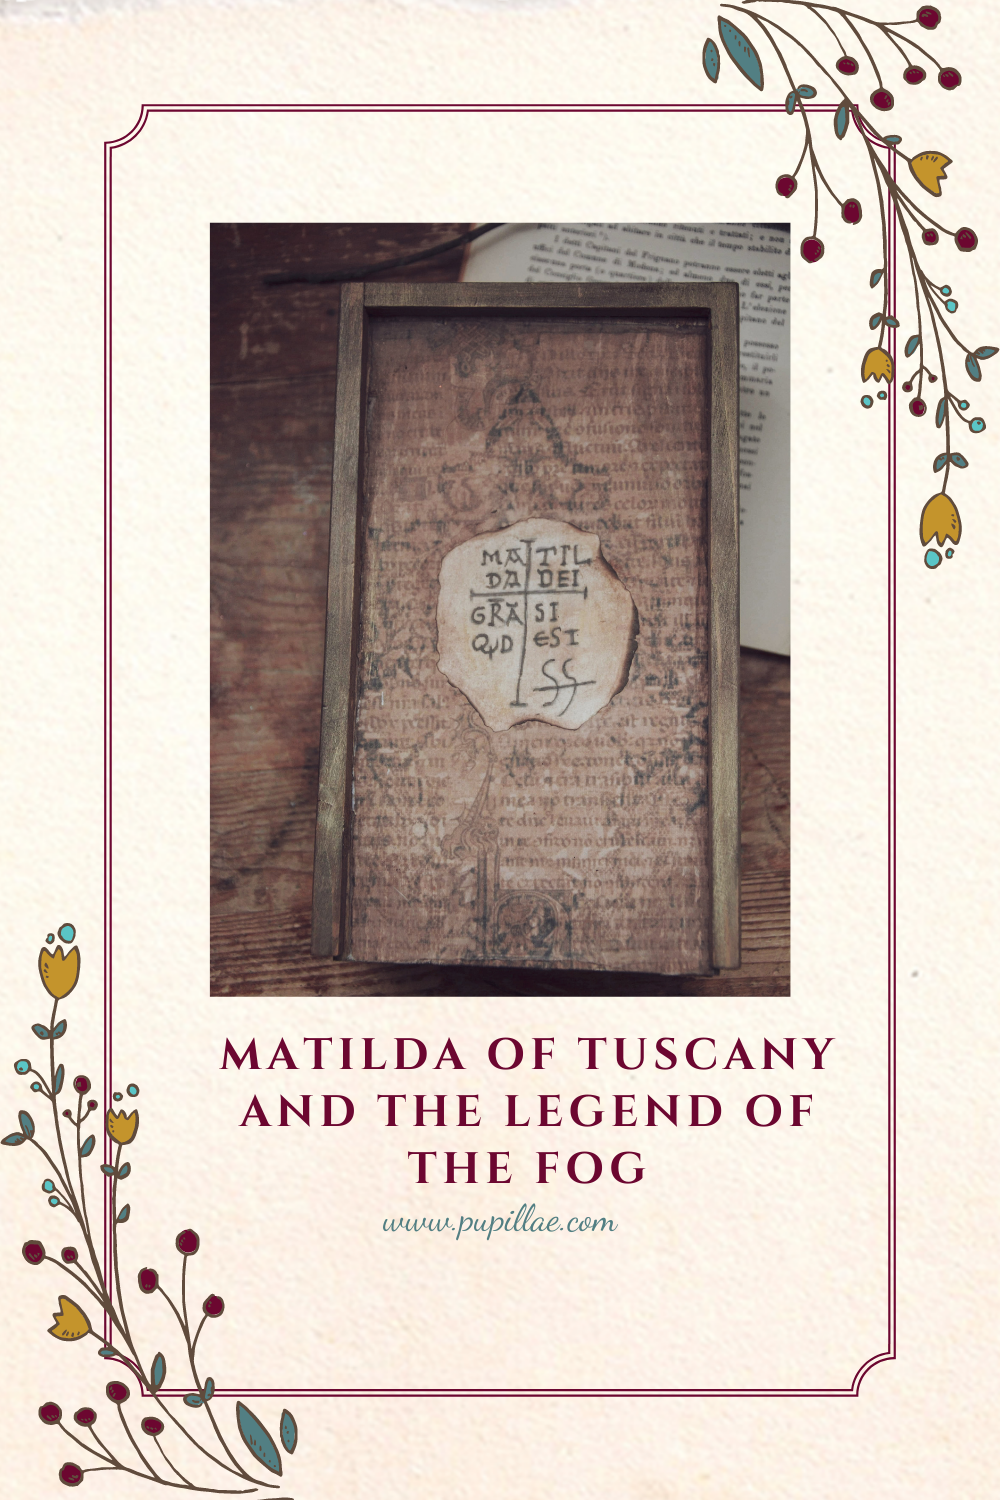 Matilda of Tuscany and the legend of the fog